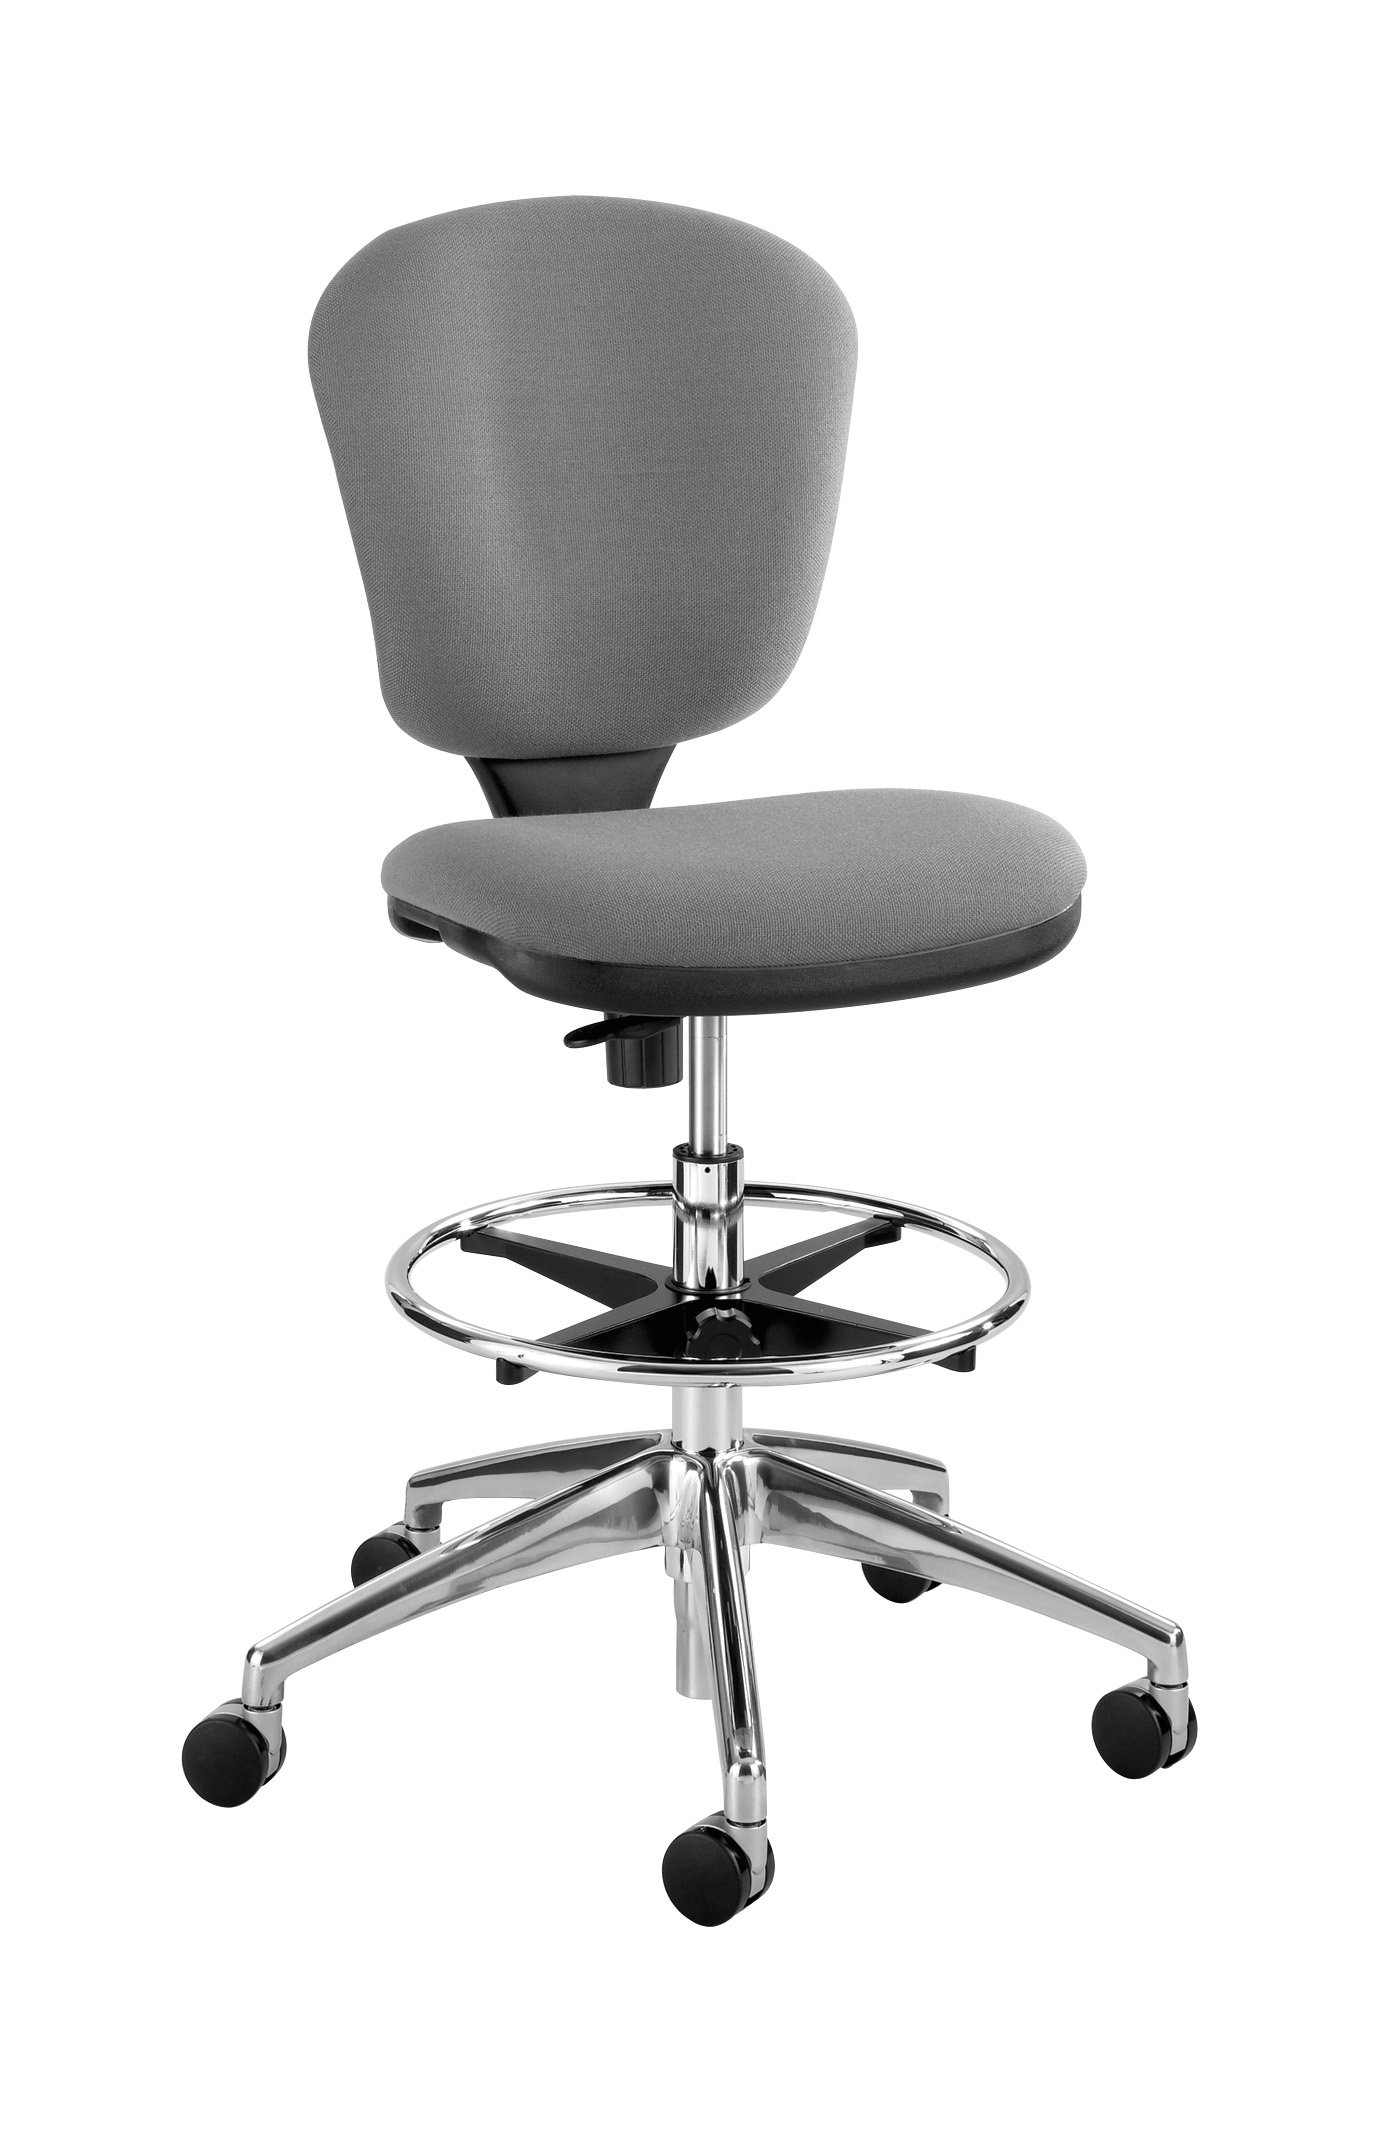 Safco Products Metro Extended Height Chair 3442GR, Ergonomic, Pneumatic Height Adjustable, Heavily Padded